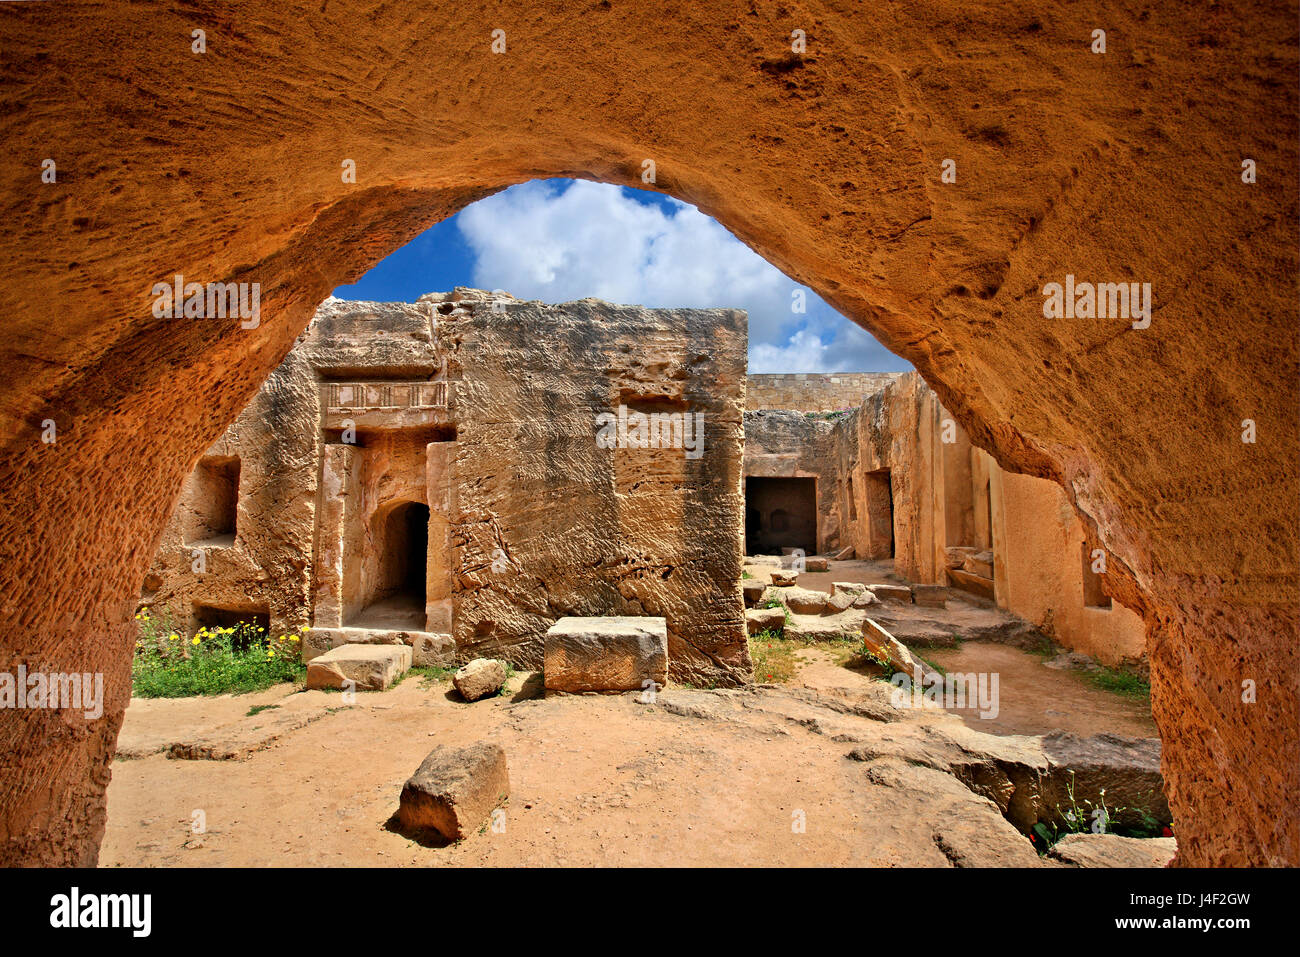 Tombs of the Kings (UNESCO World Heritage Site), Paphos, Cyprus. Paphos town is one of the 2 European Capitals of - Stock Image